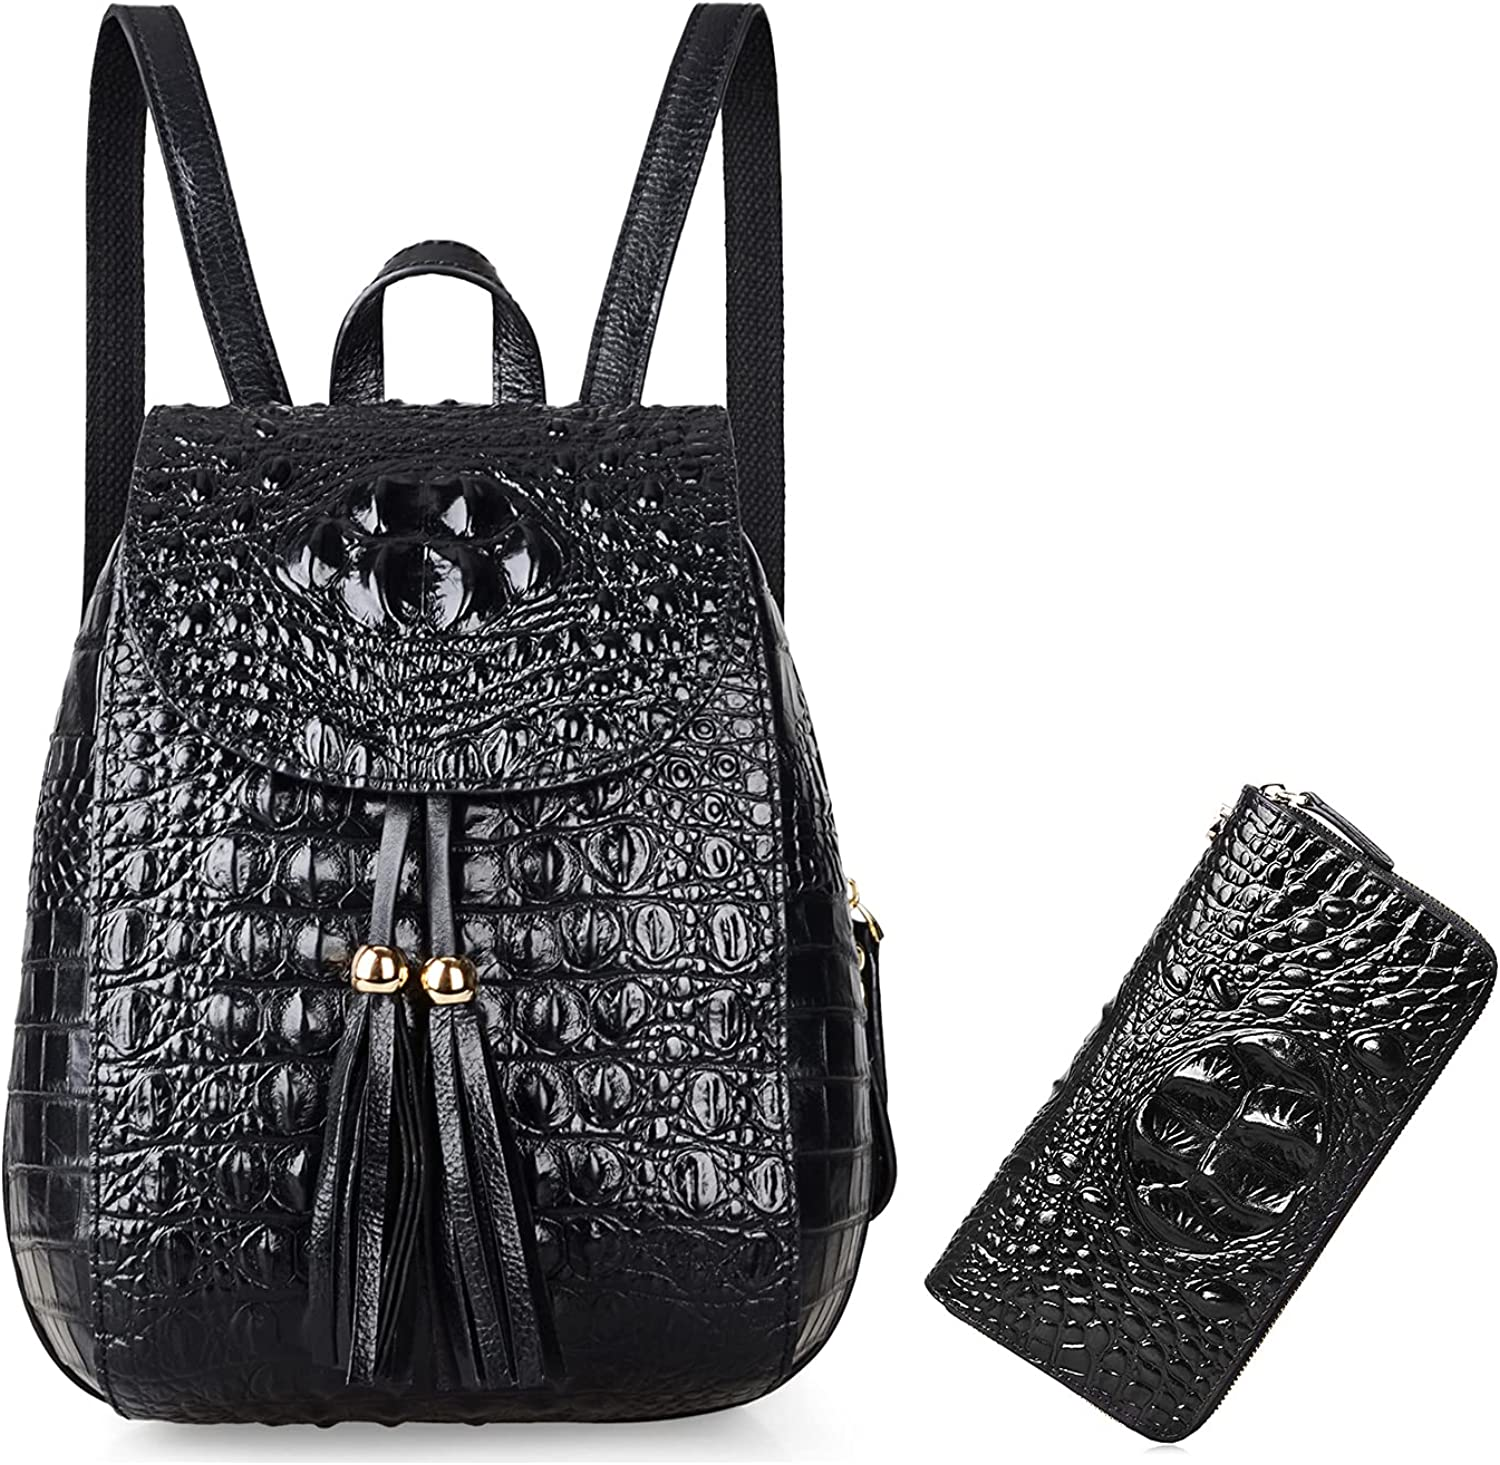 PIJUSHI Leather Backpack For Women Crocodile Bags Fashion Casual Backpack Purses Bundle with Wristlet Wallet For Women Crocodile Leather Wallet Ladies Clutch Purses